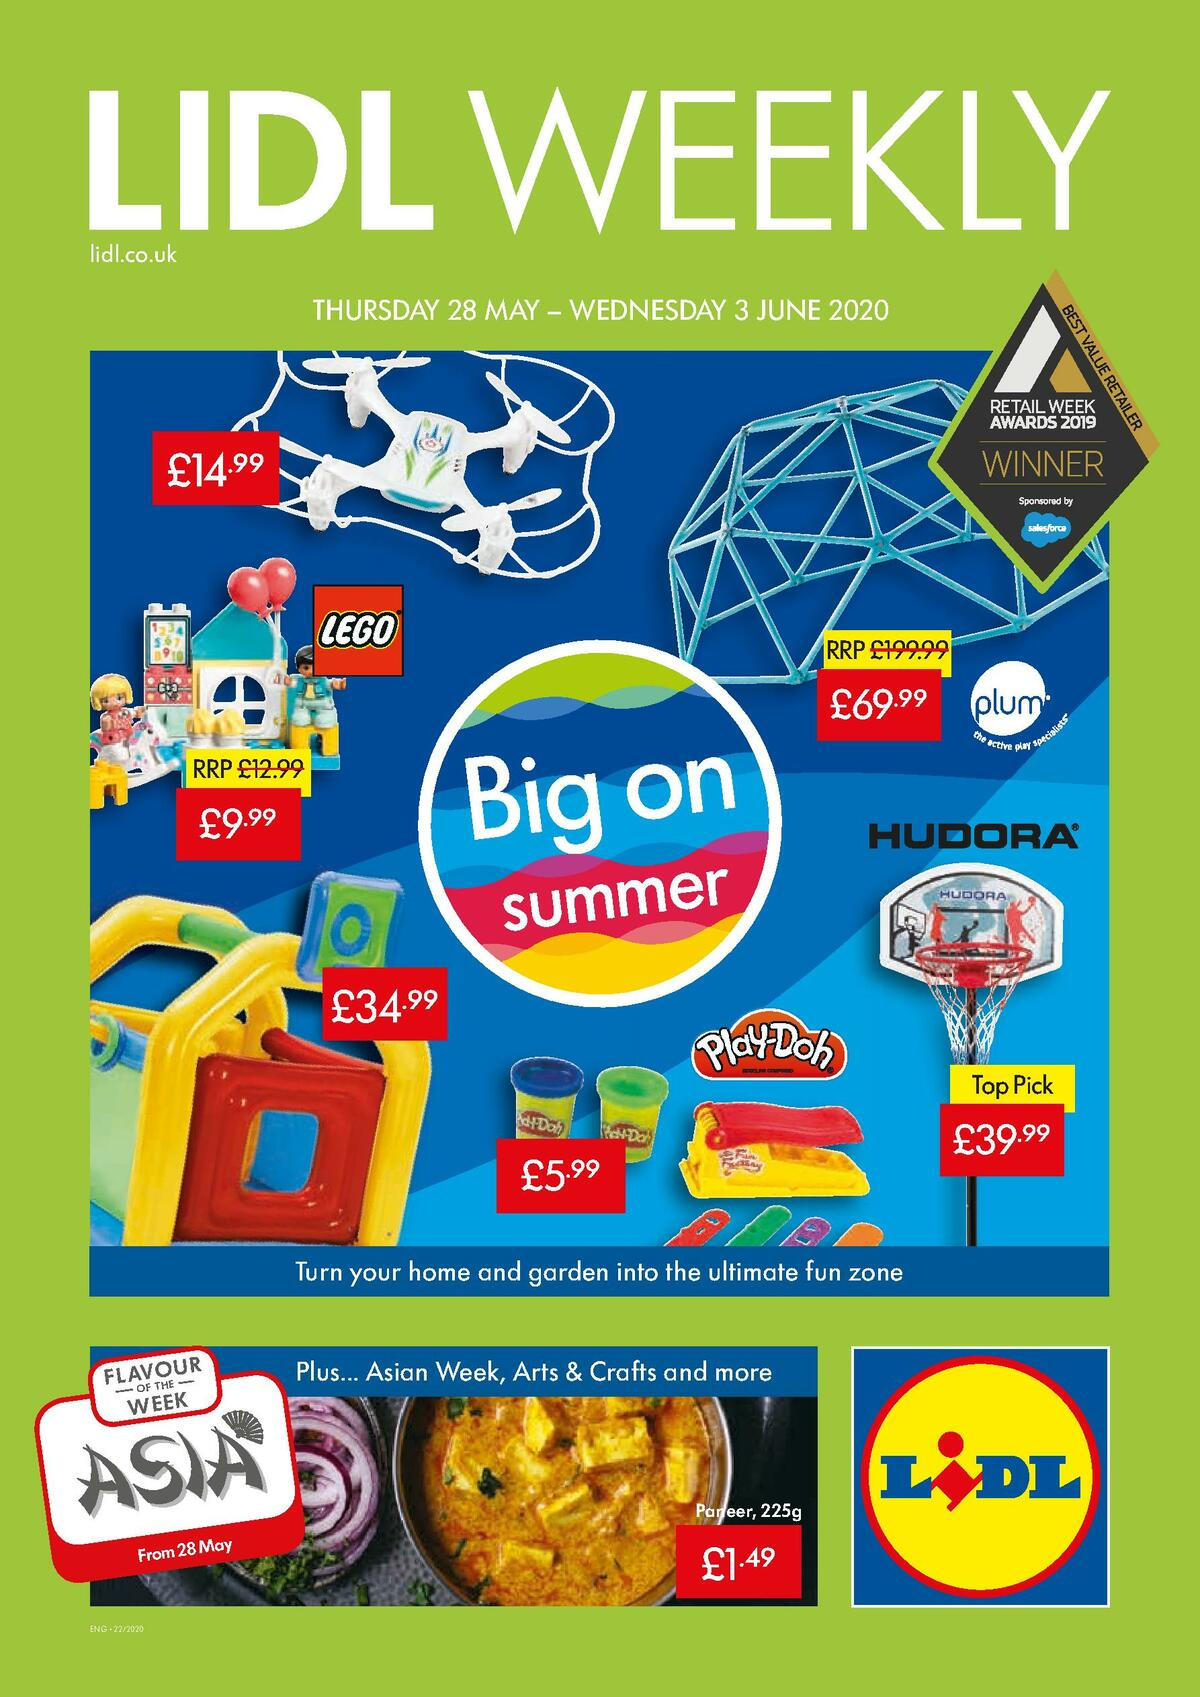 LIDL Offers from May 28